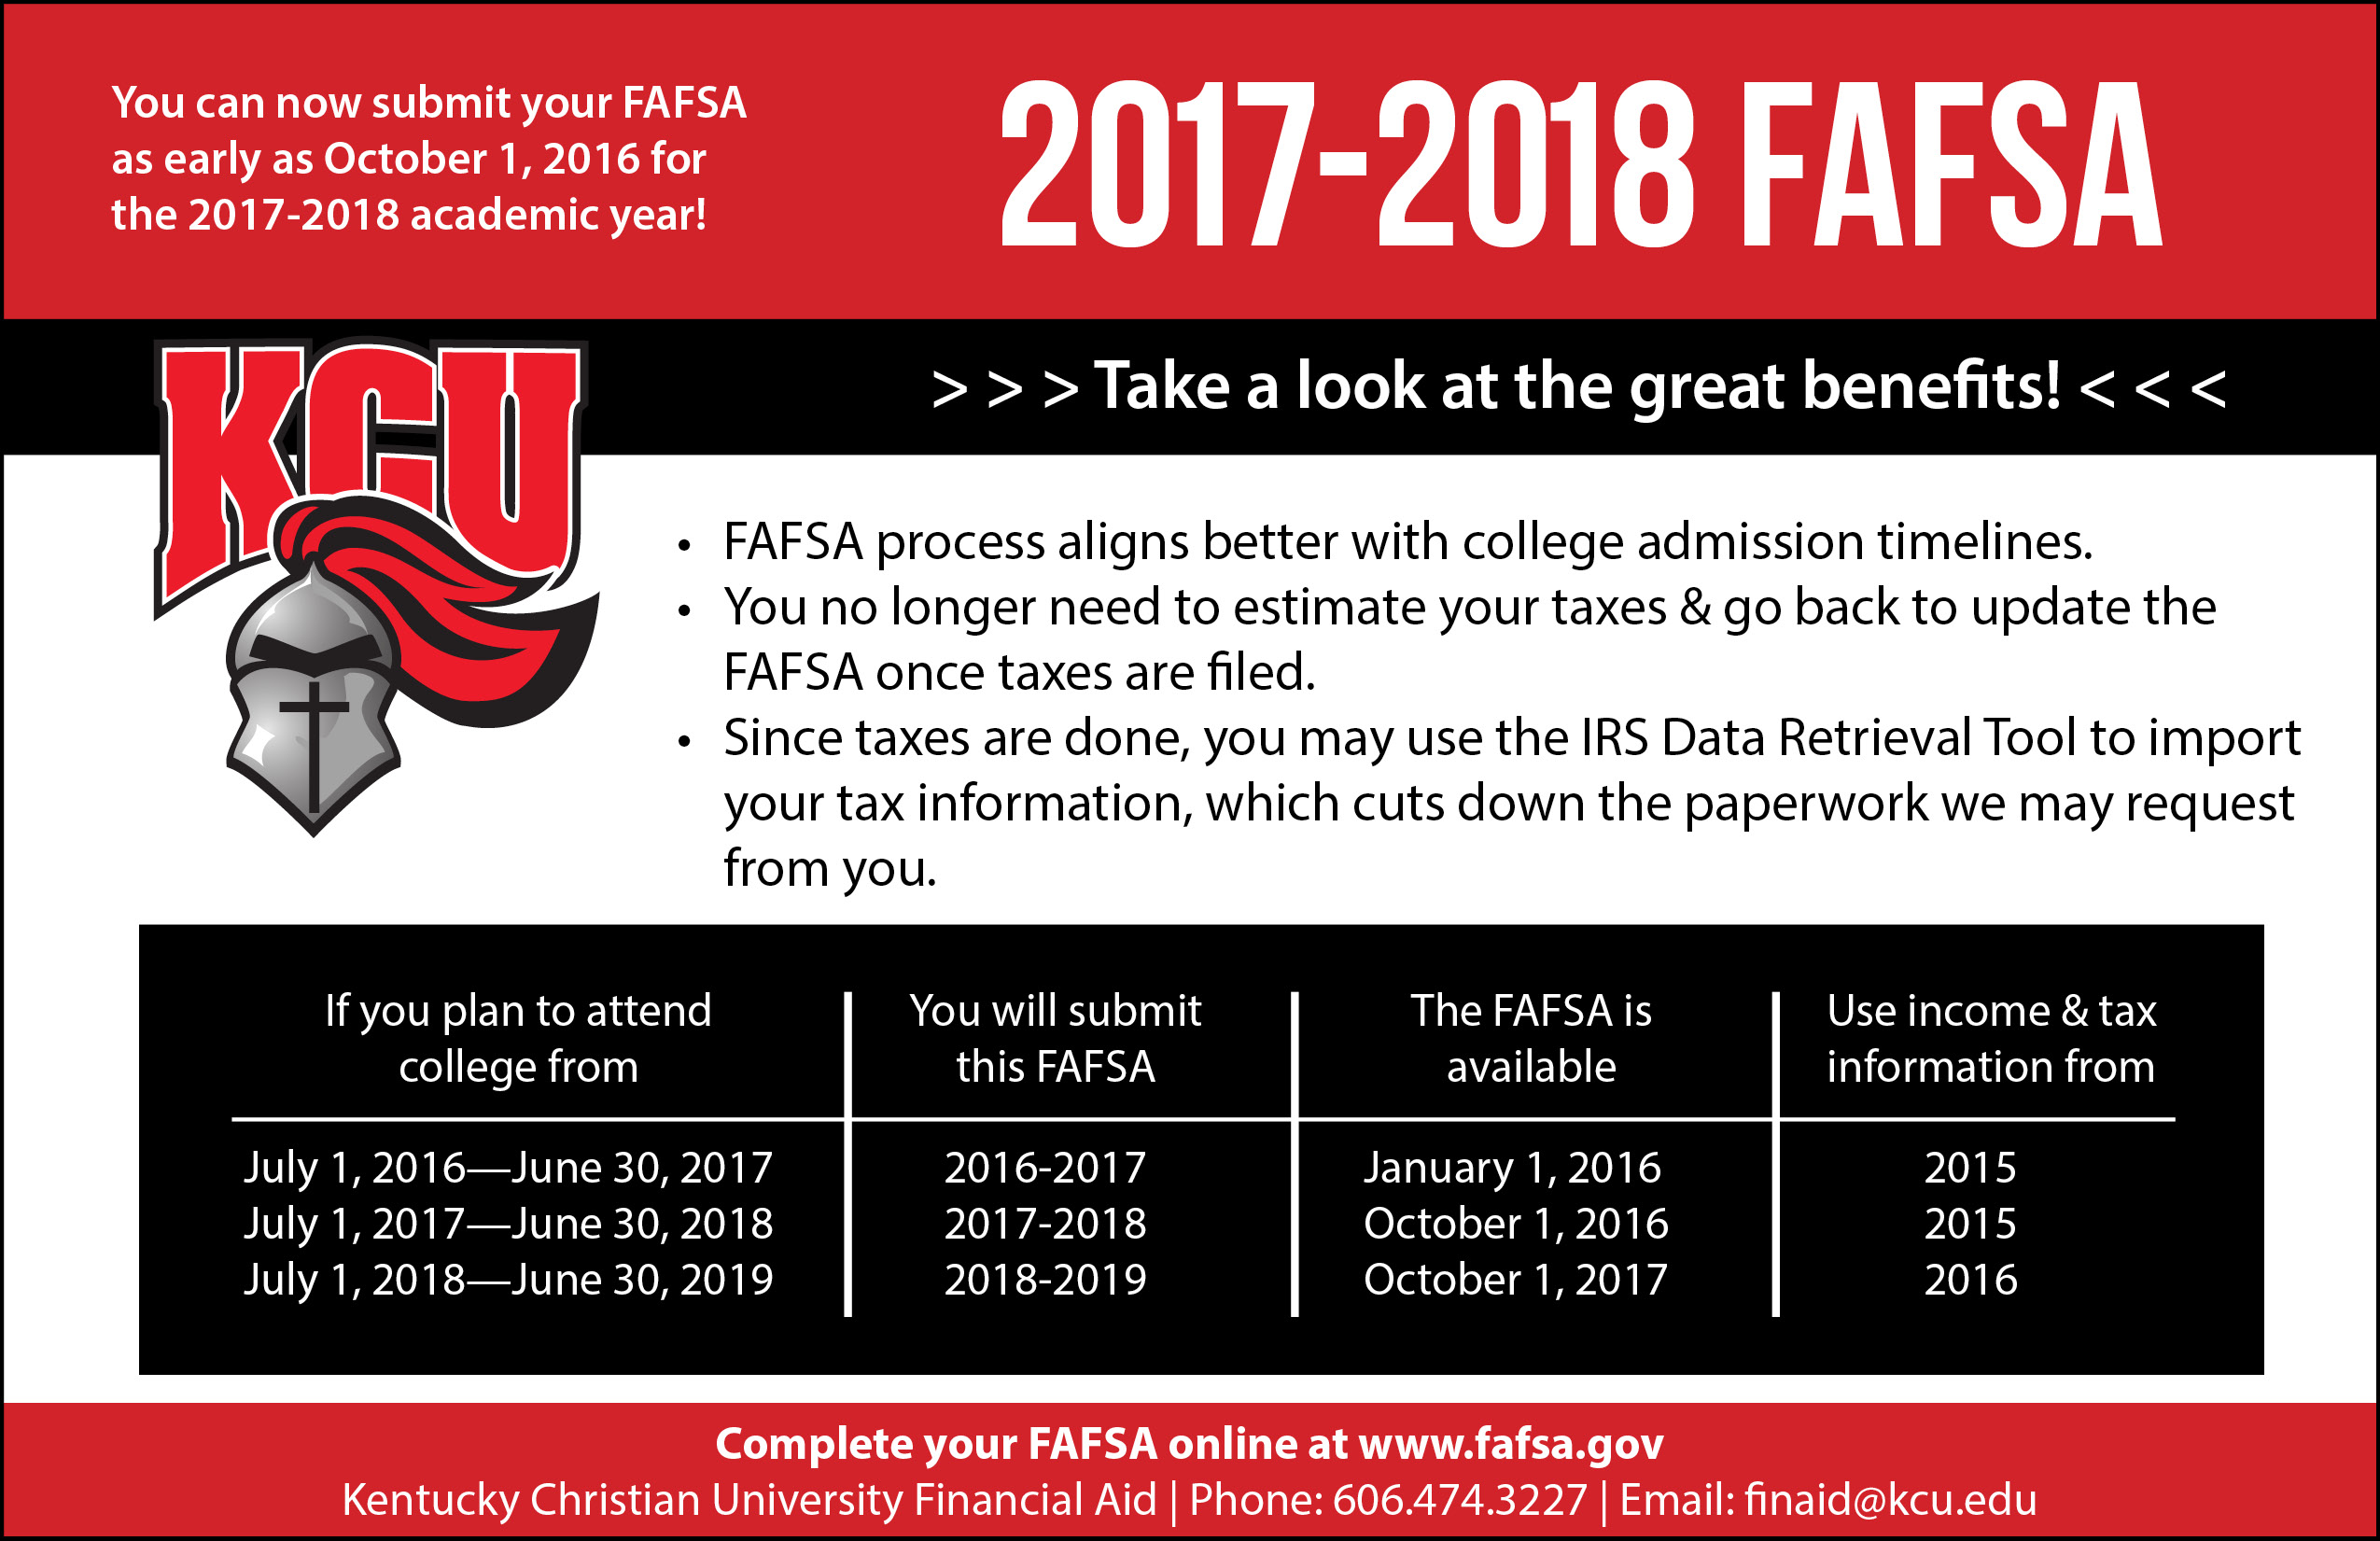 Free Worksheet Fafsa On The Web Worksheet fafsa on the web worksheet workbook site kentucky christian university